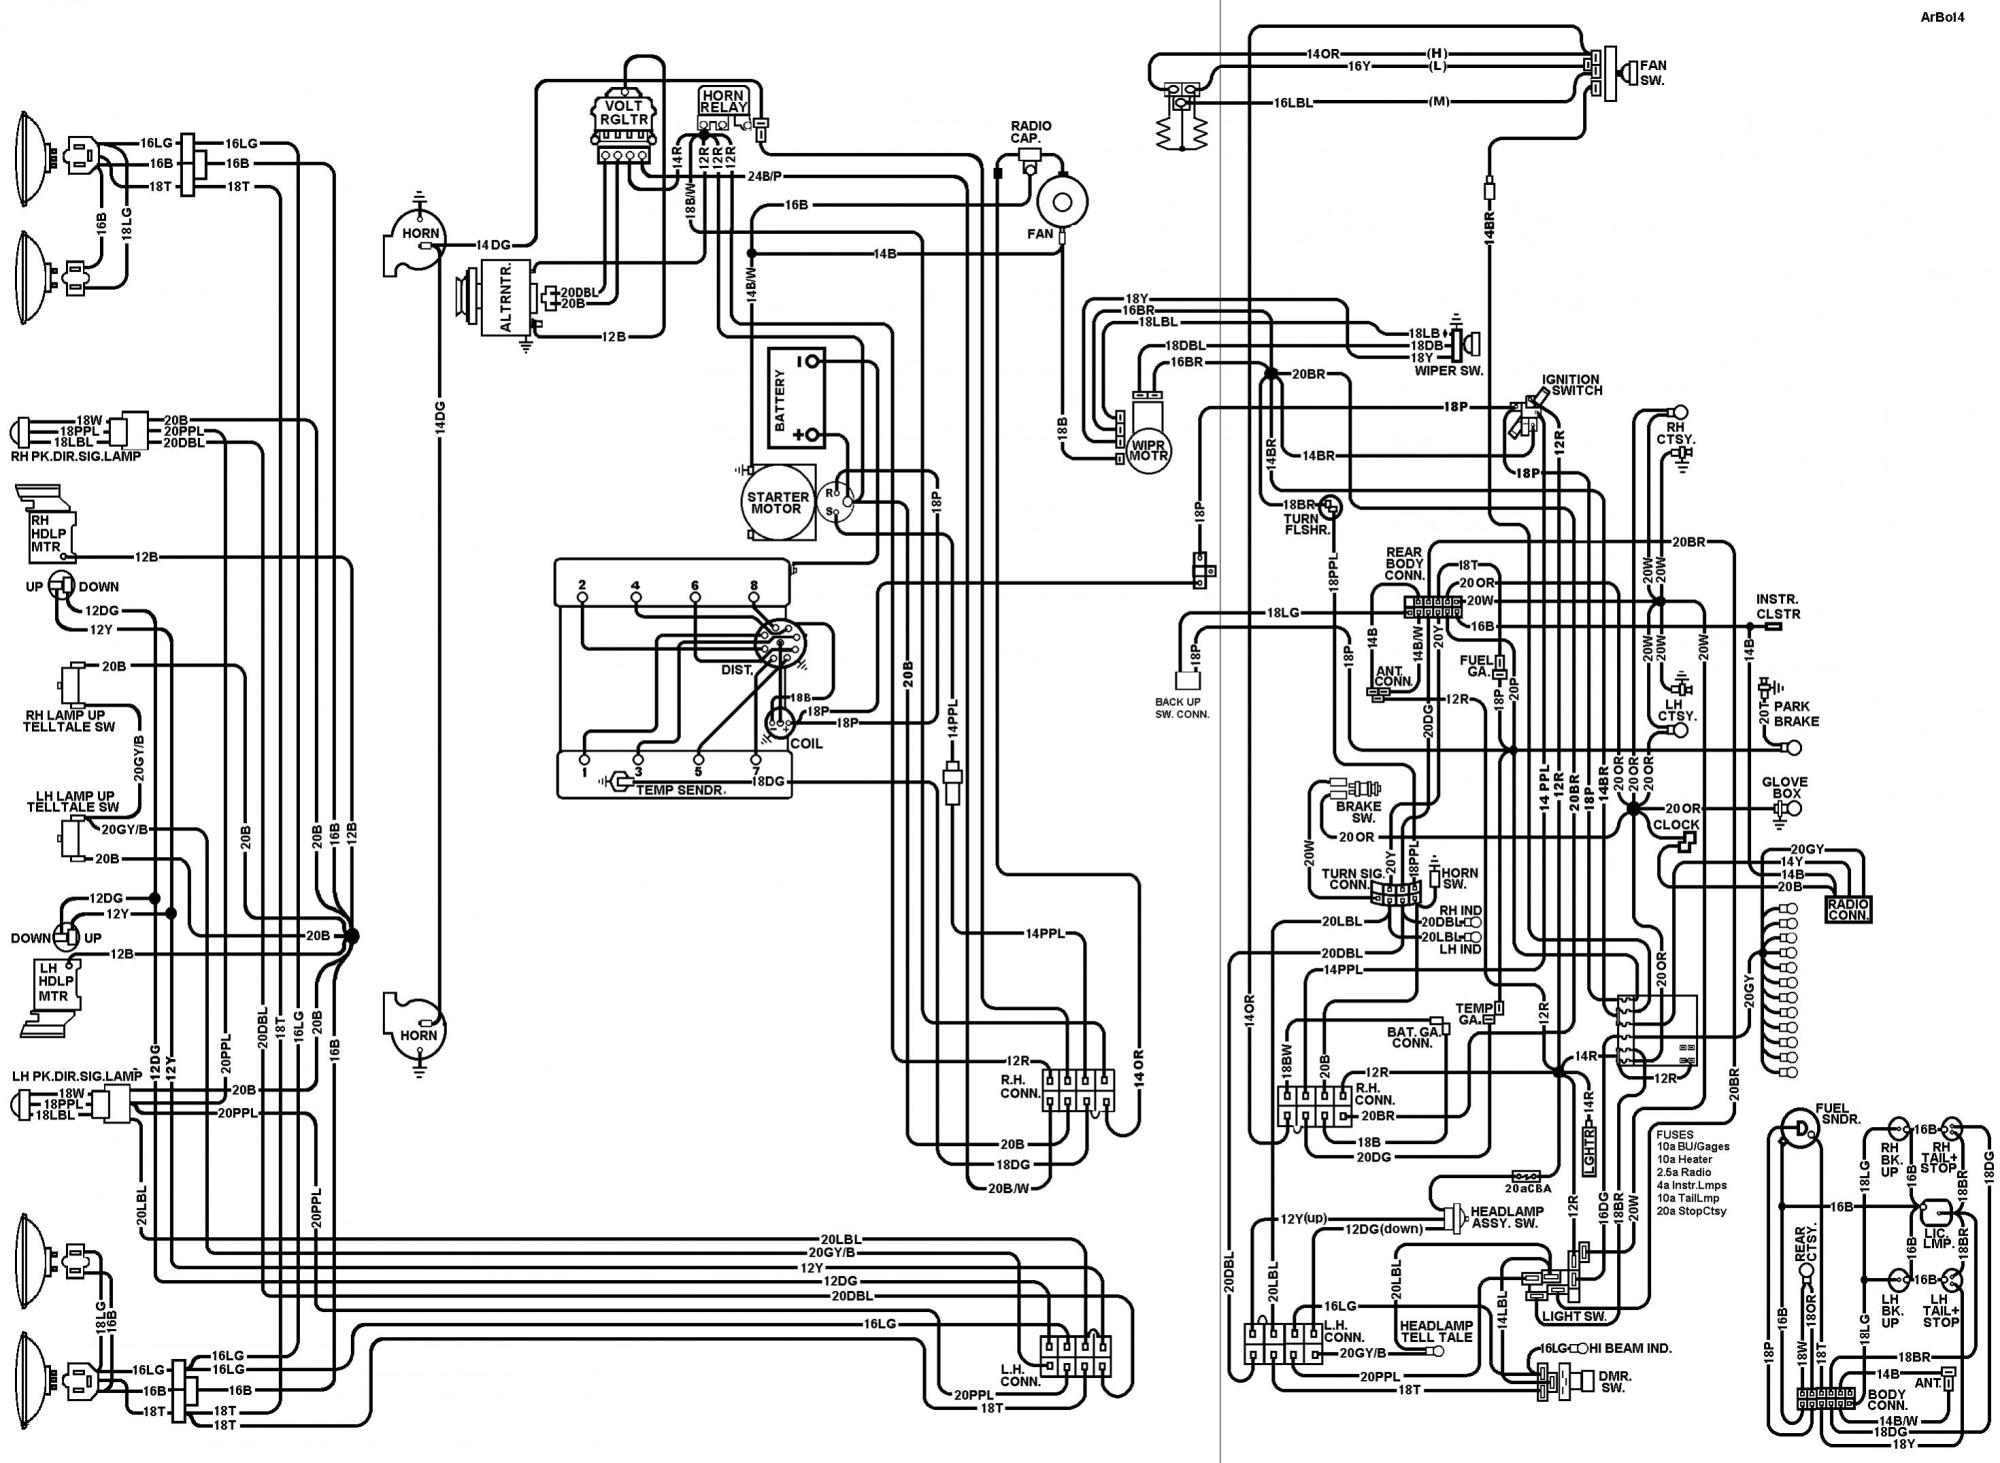 hight resolution of corvette wiring harness wiring diagram img c7 corvette wiring harness 1967 corvette wiring harness wiring diagram